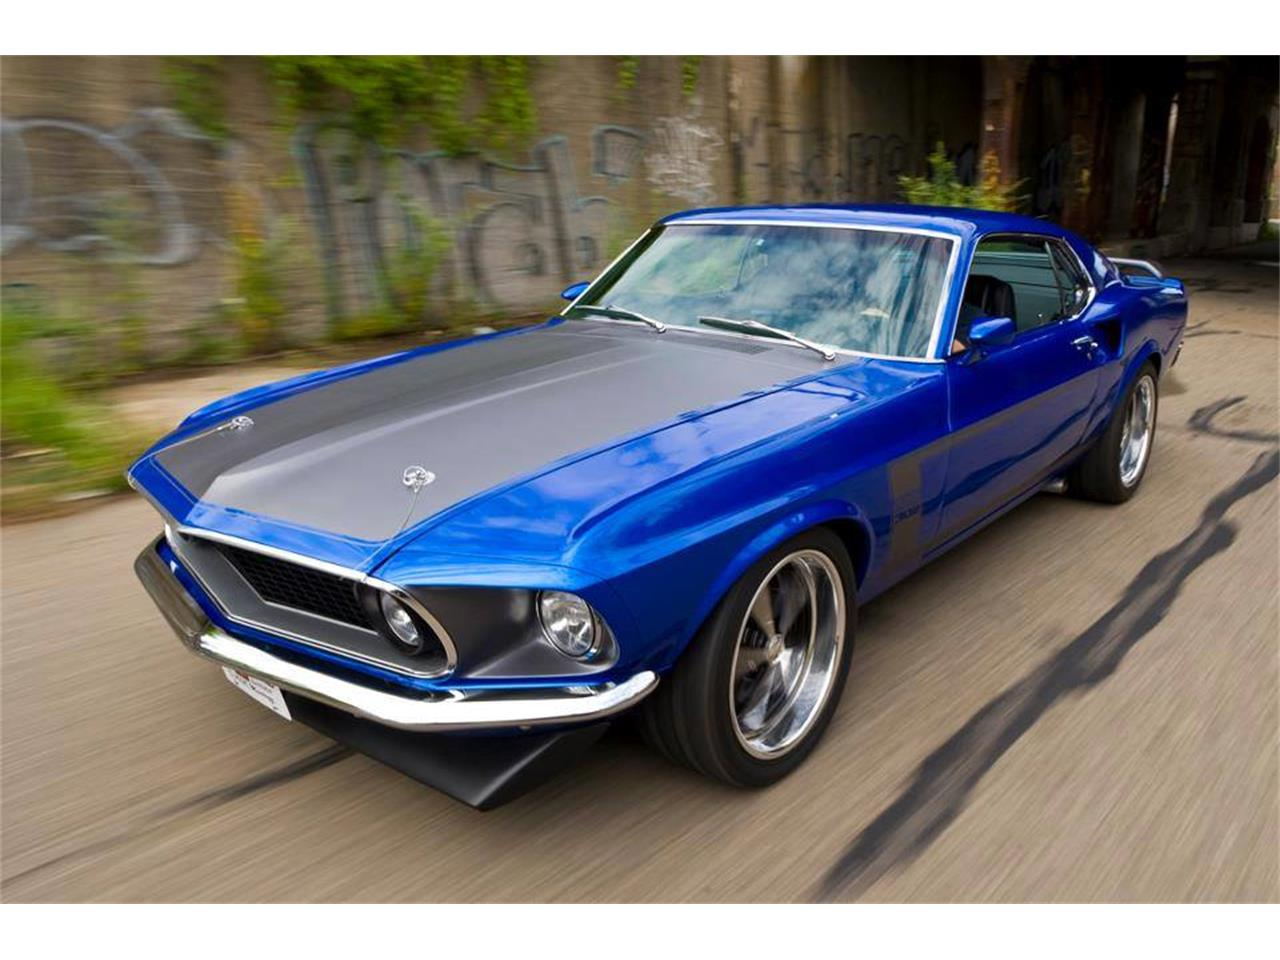 1969 Mustang Boss 302 Mach 1 for Sale | ClassicCars.com | CC-965867